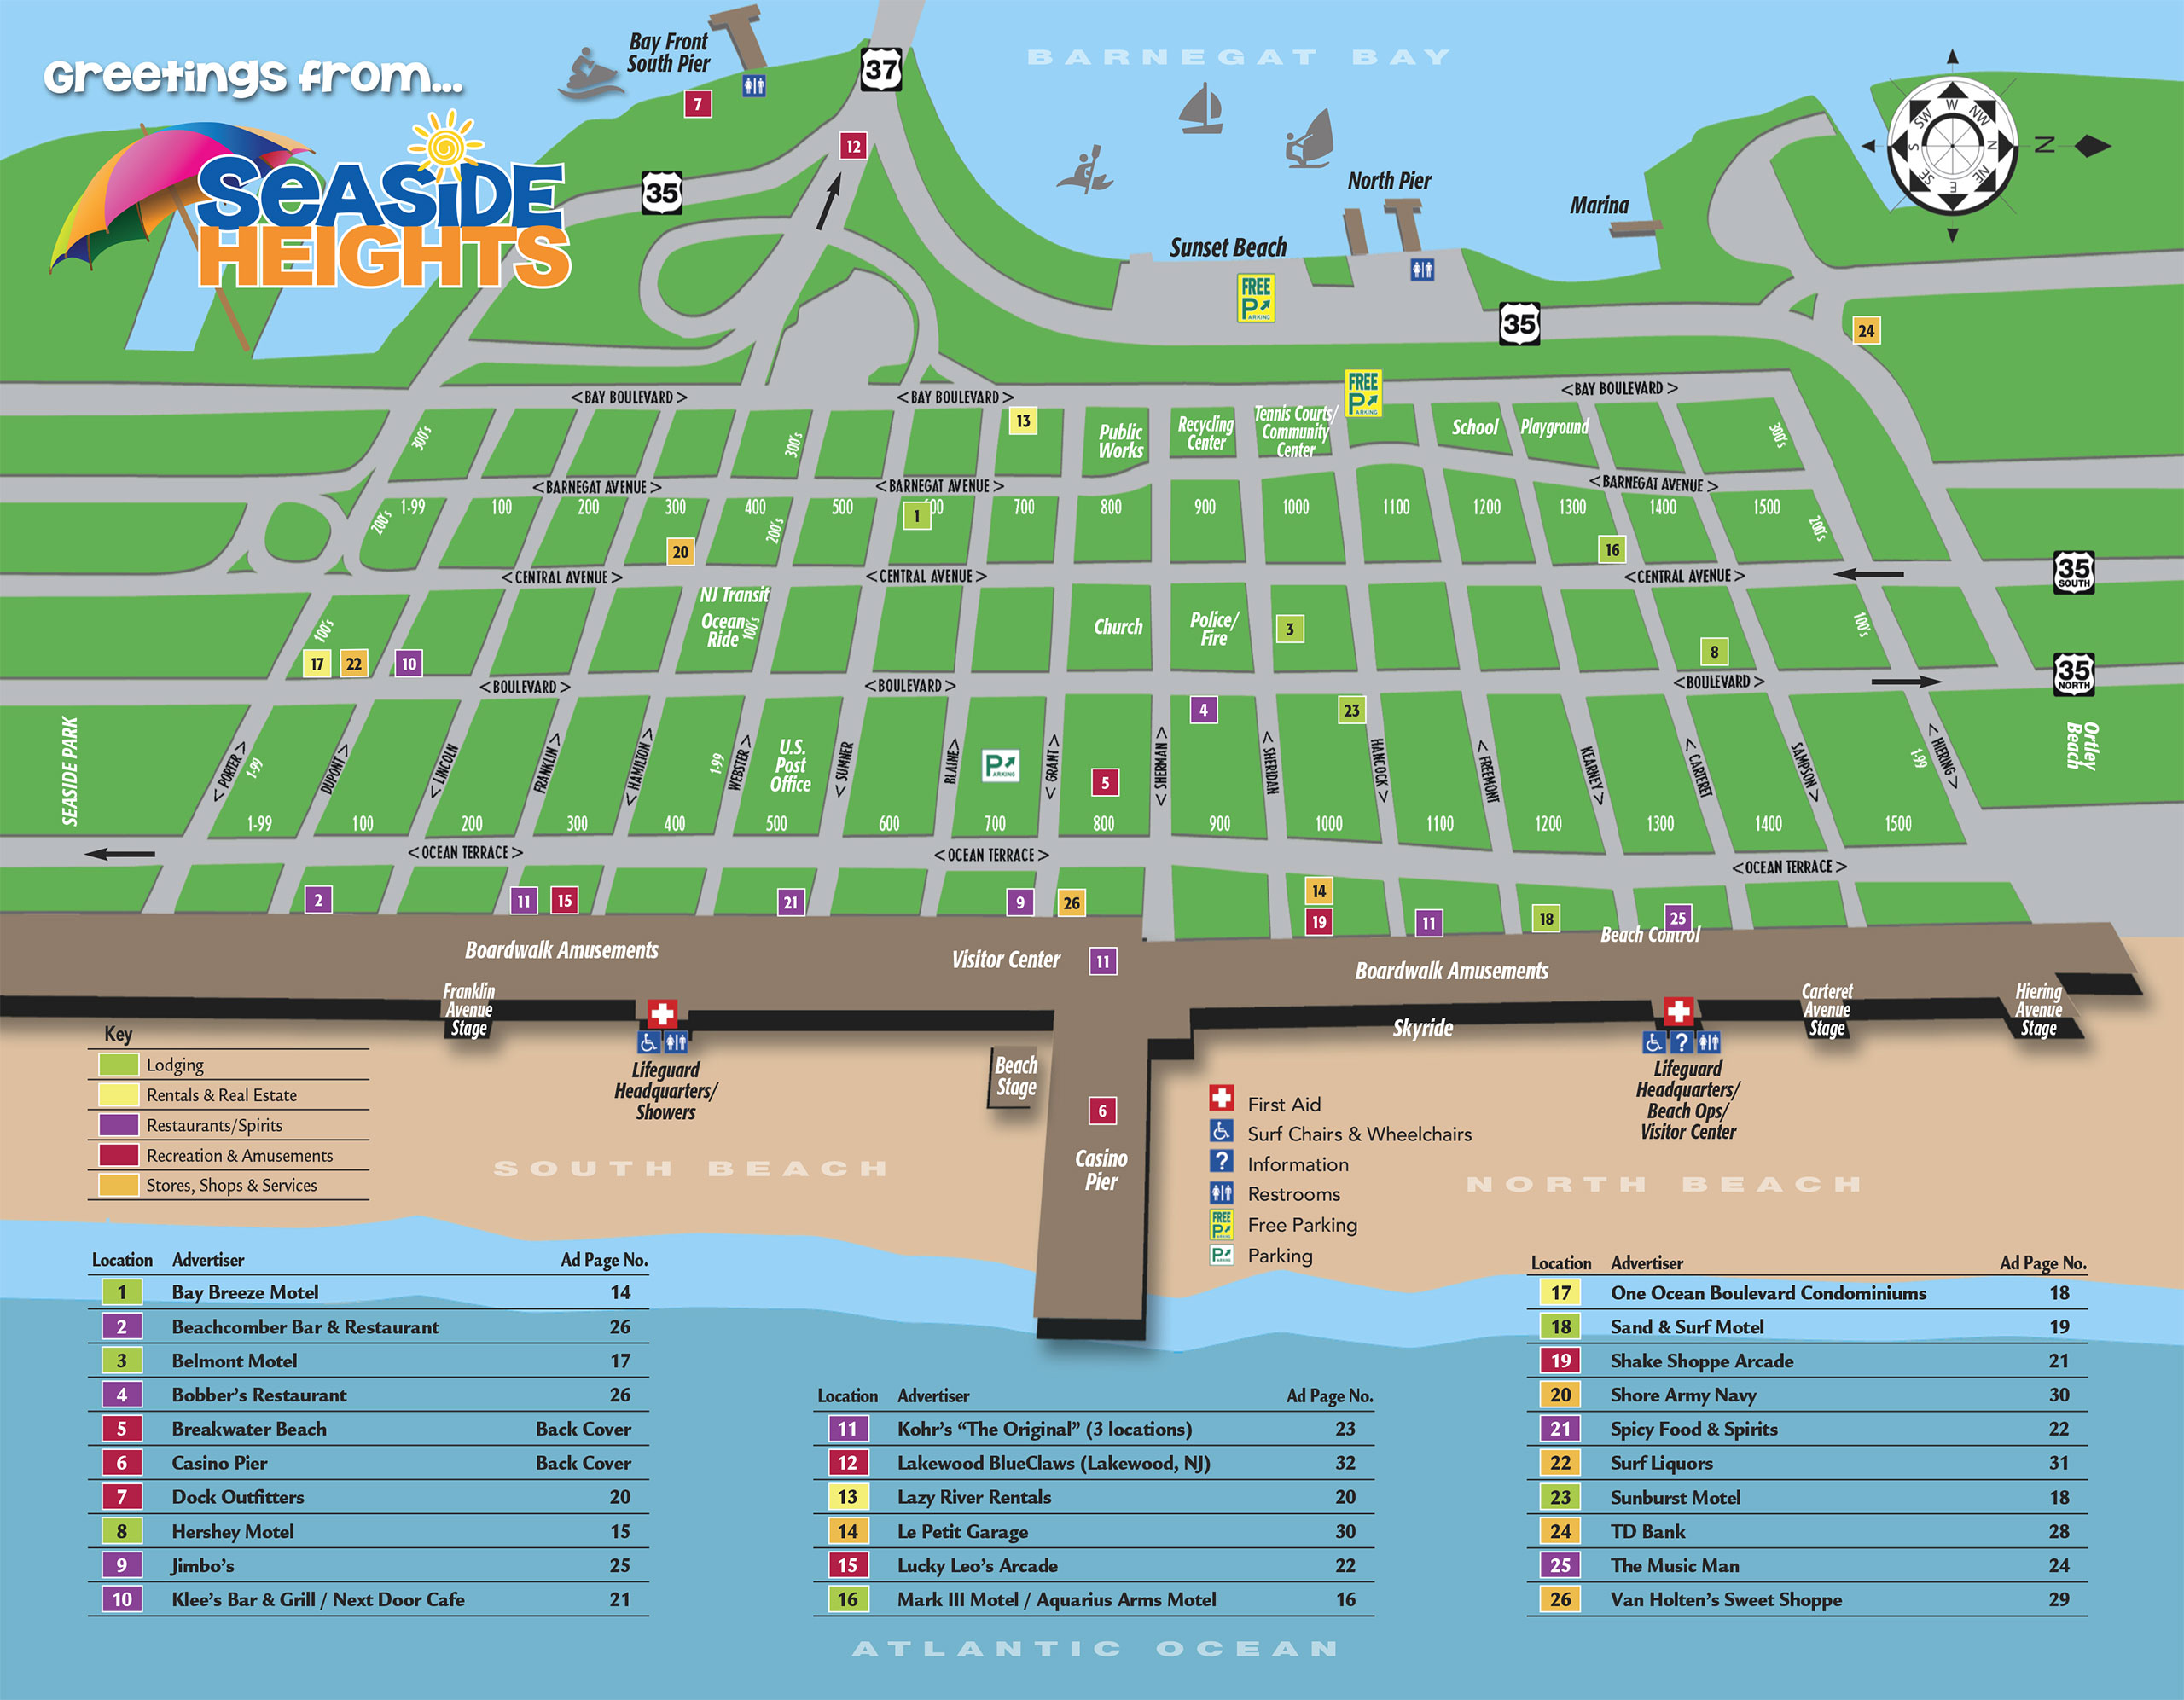 SSH-2016-Vacation-Planner-WEB-Map - Seaside Heights New ... on chualar map, glenwood park map, newport us map, whitestone map, florence oregon map, la frontera map, white city map, sunset vistas map, oakridge map, tillamook area map, tillamook cheese factory map, sea pines hilton head island map, canyonville map, gearhart map, gorda map, gold hill map, fishing village map, falcon cove map, irrigon map, youngs bay map,